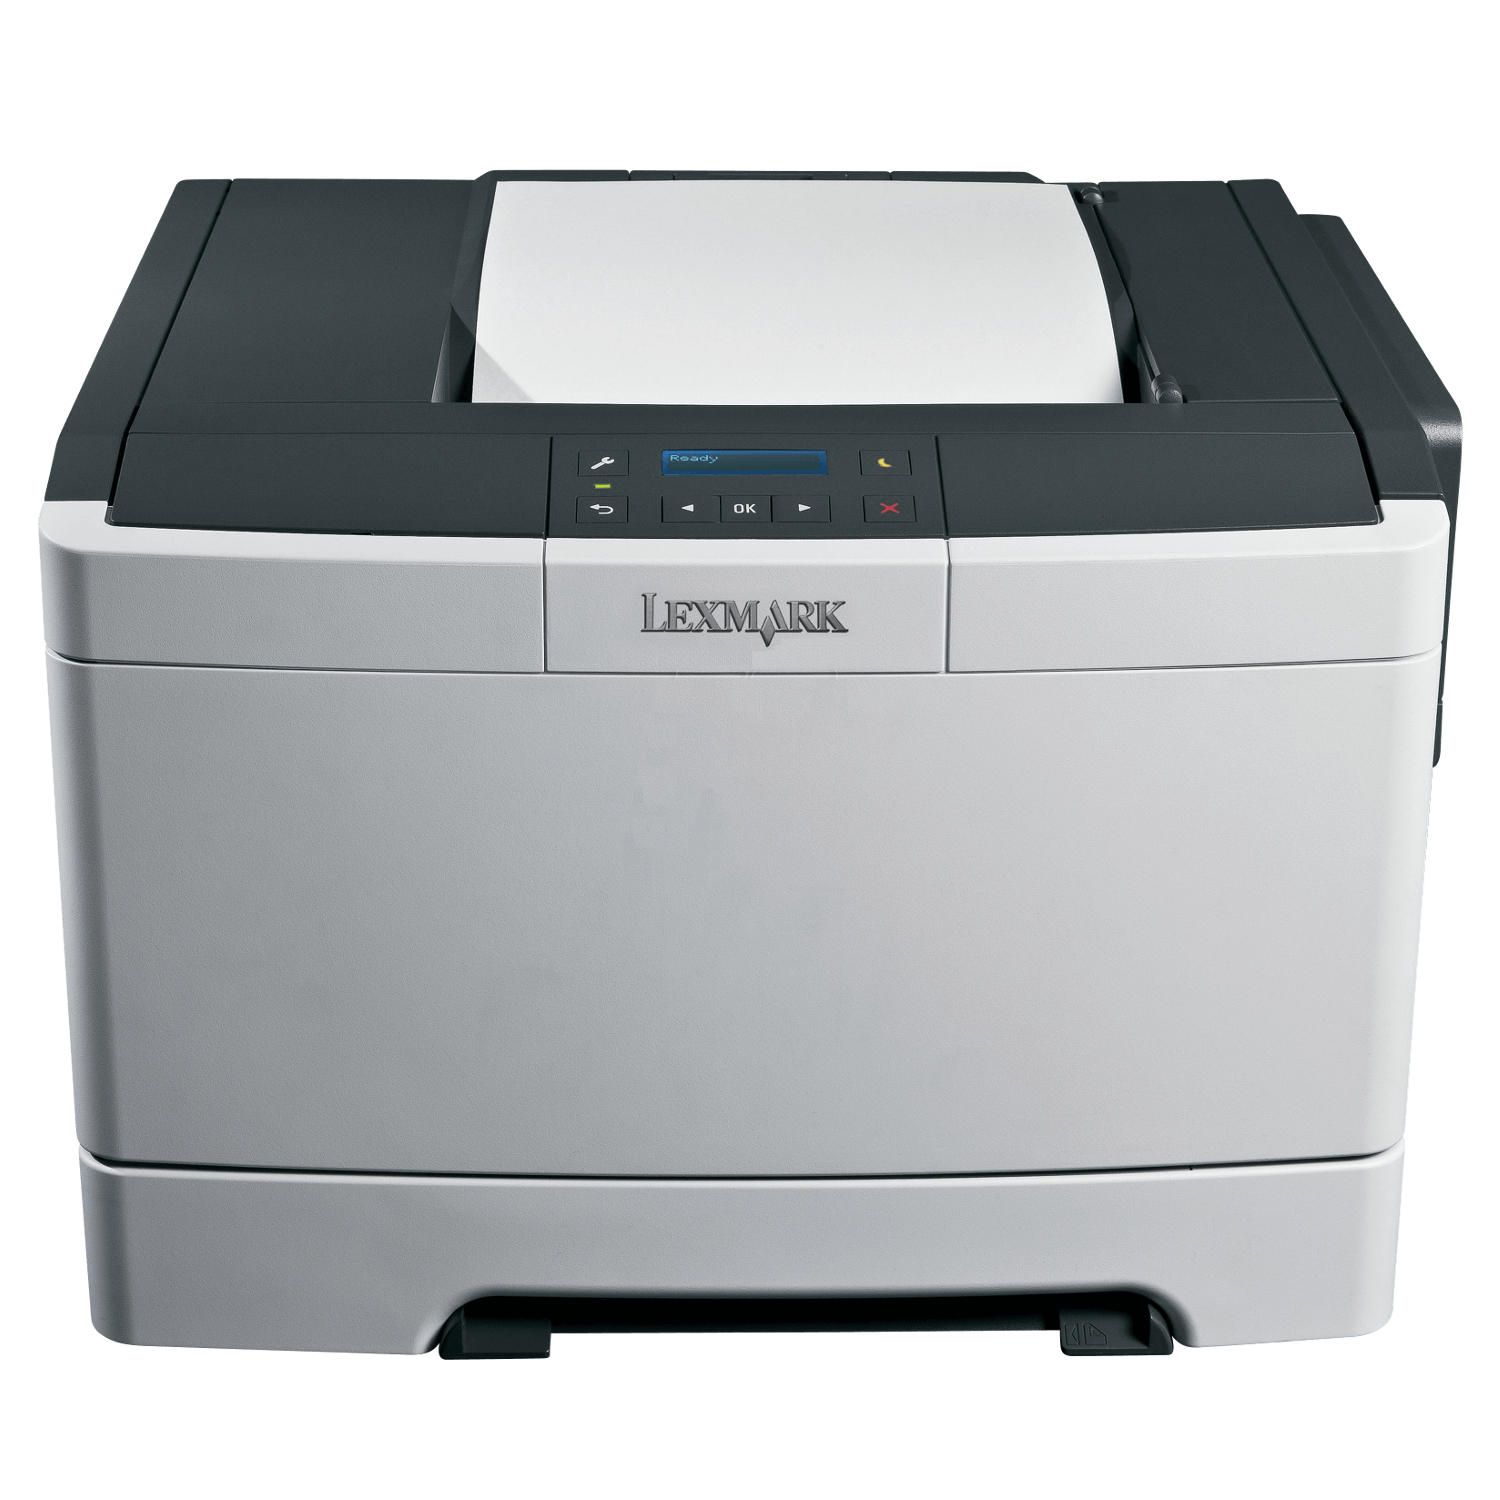 Lexmark Cs310n Single Function Color Laser Printer